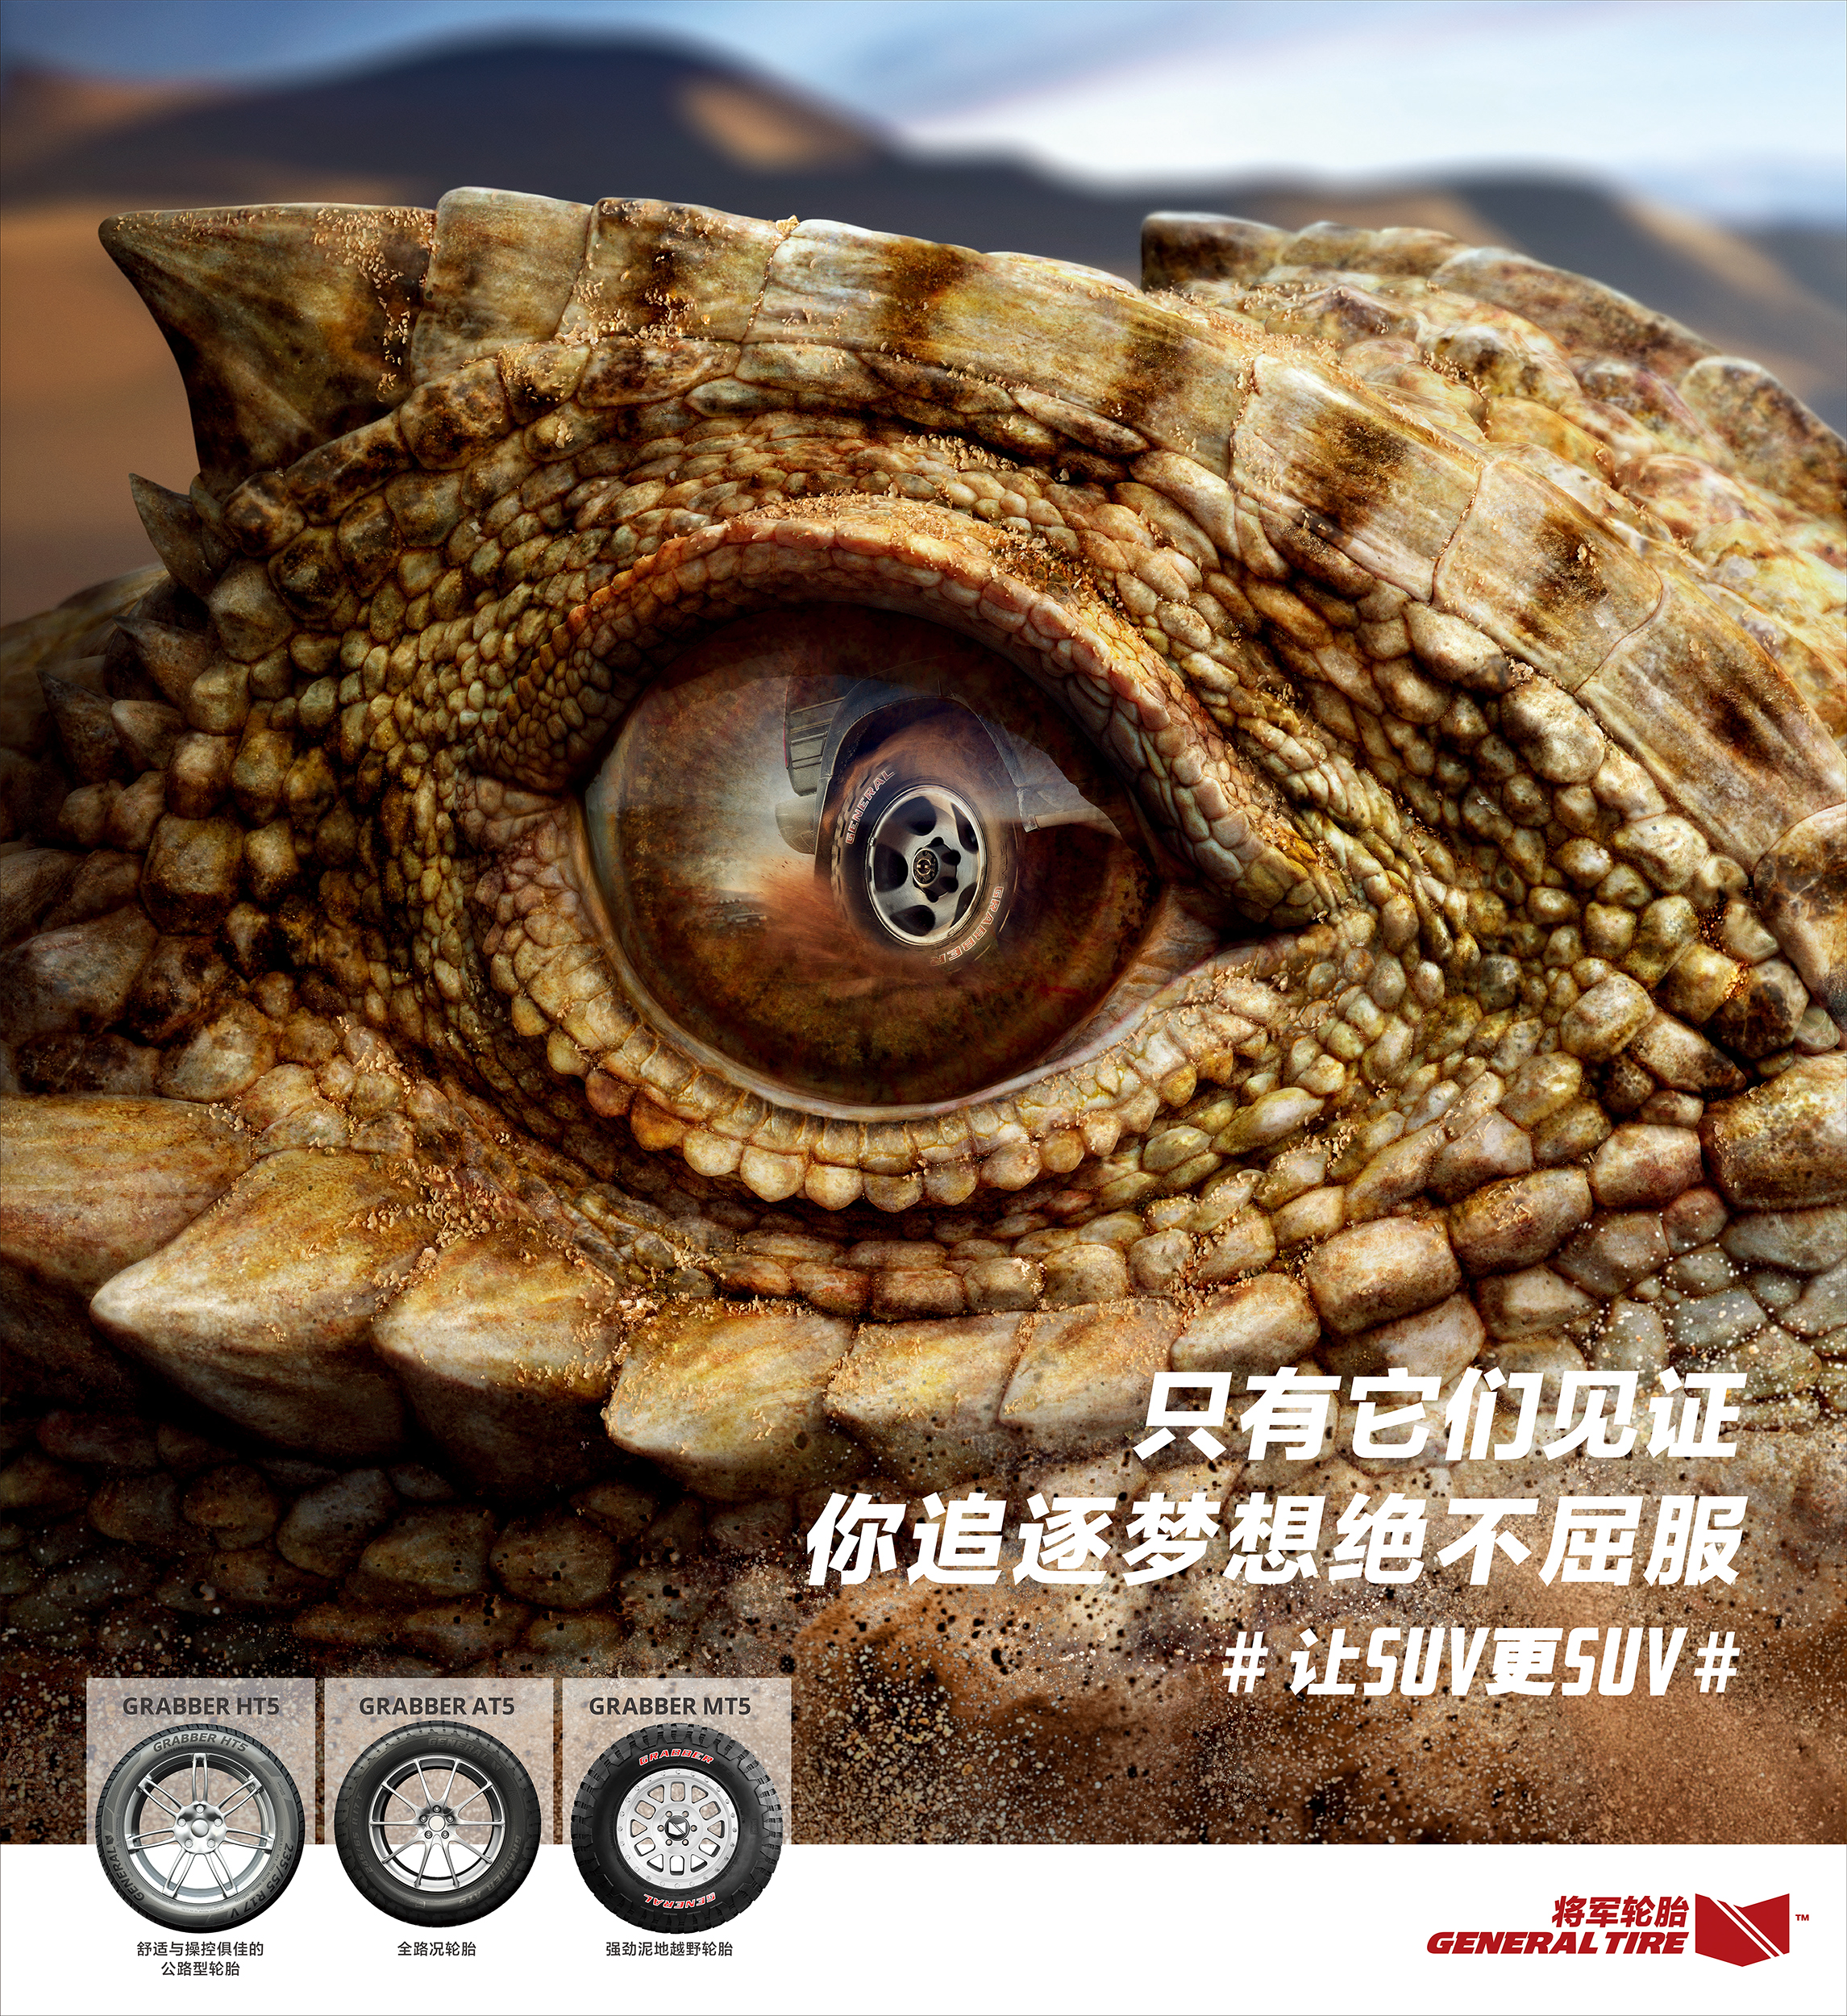 General Tires  Havas Worldwide Shanghai